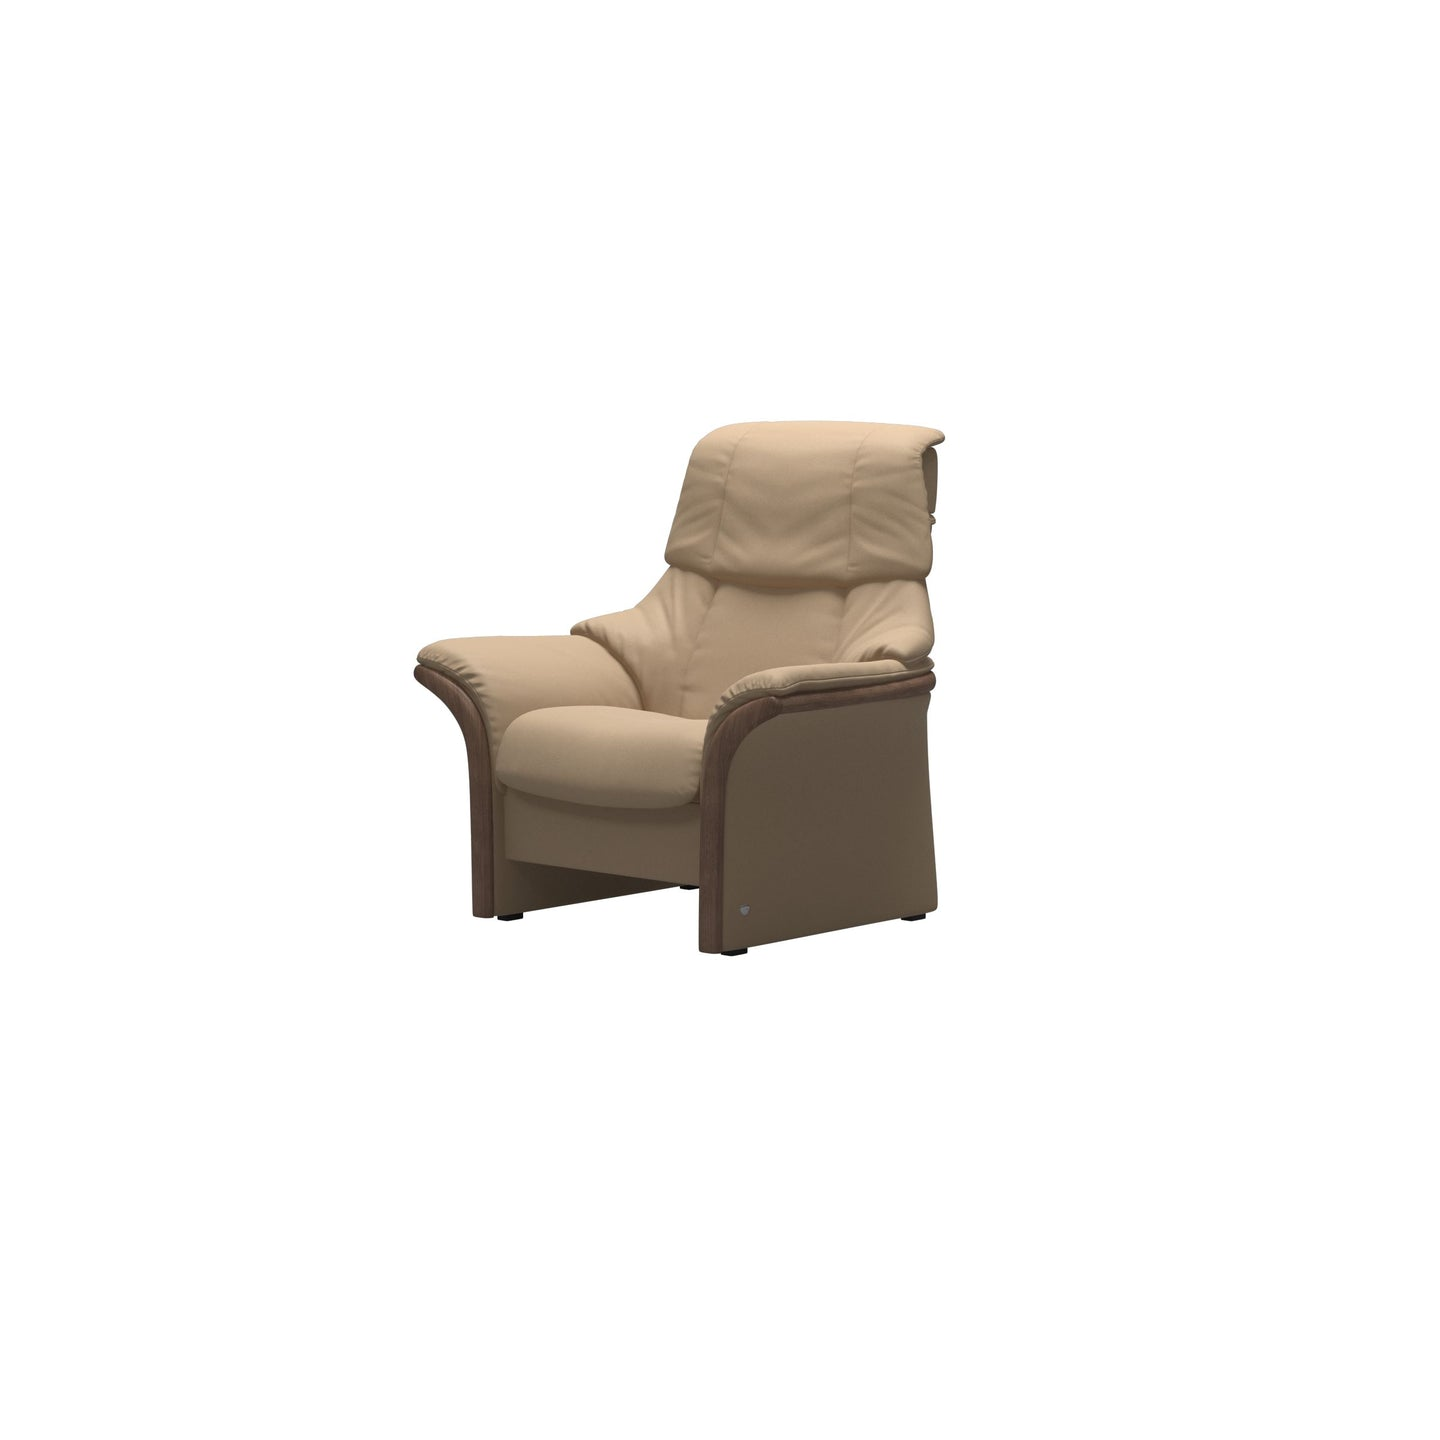 Stressless® Eldorado (M) chair High back